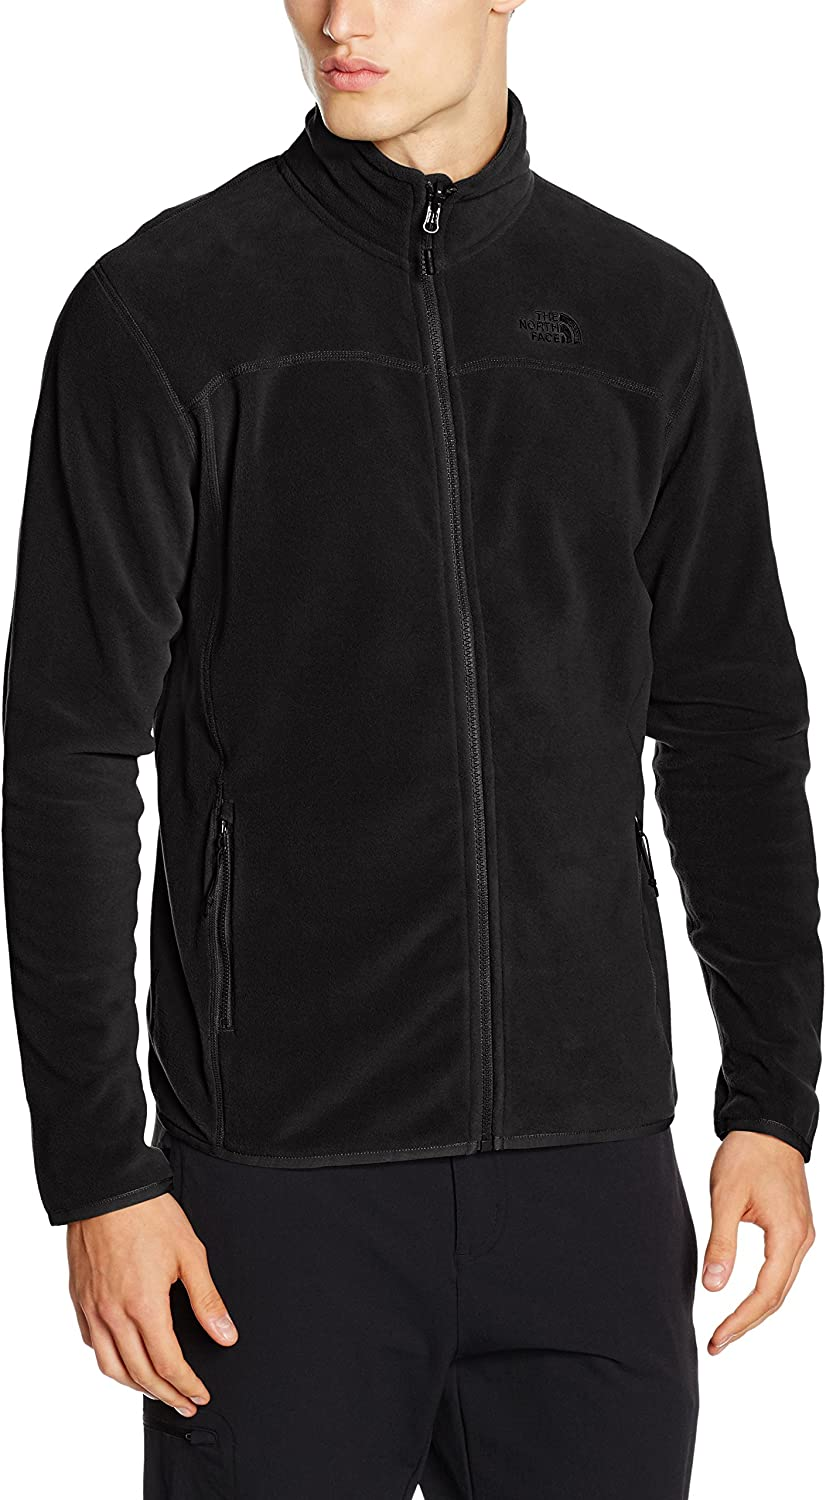 The North Face 100 Glacier Chaqueta, Hombre